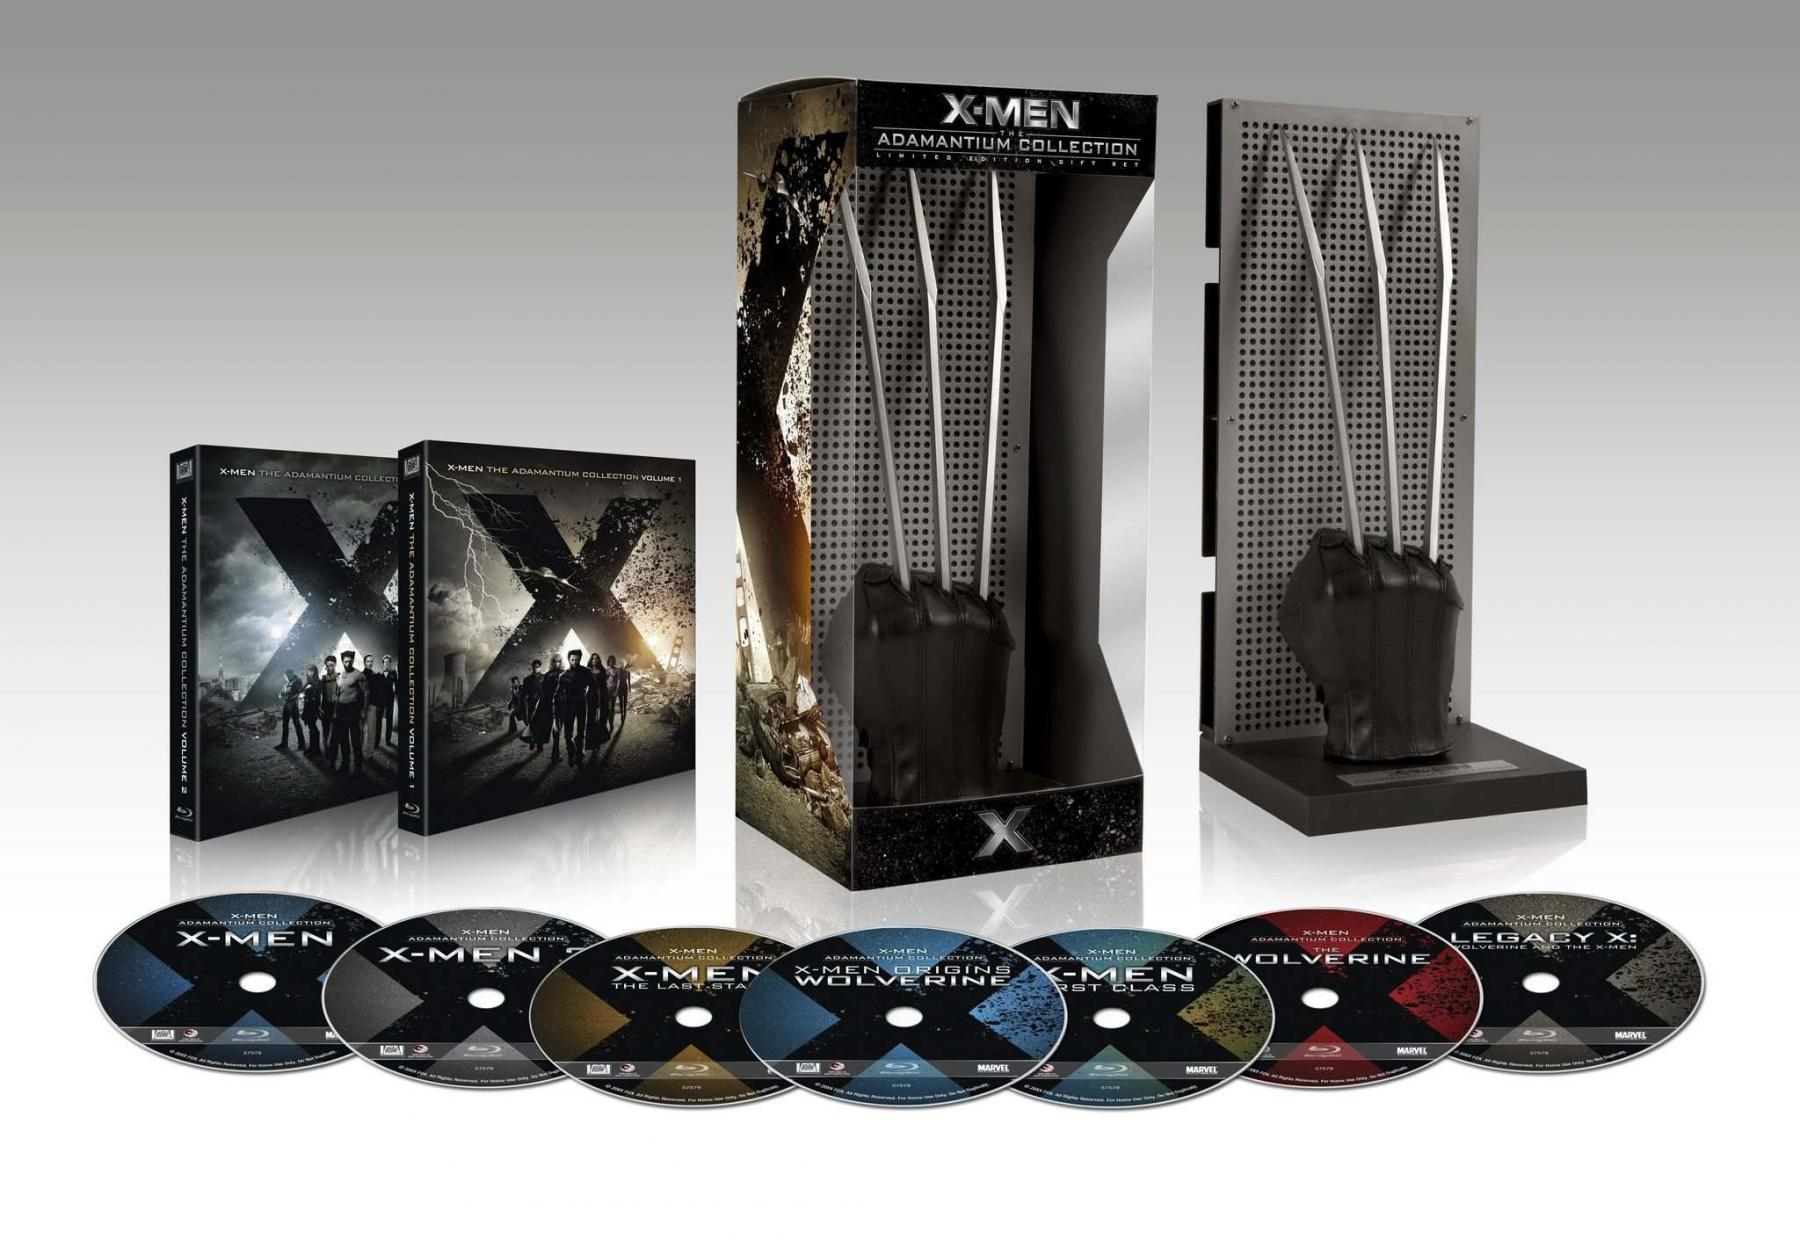 <p>Supplied</p><p>If your limited-edition X-Men collector set has a scratch, a bit of polish and some elbow grease might just get your discs working again.</p>